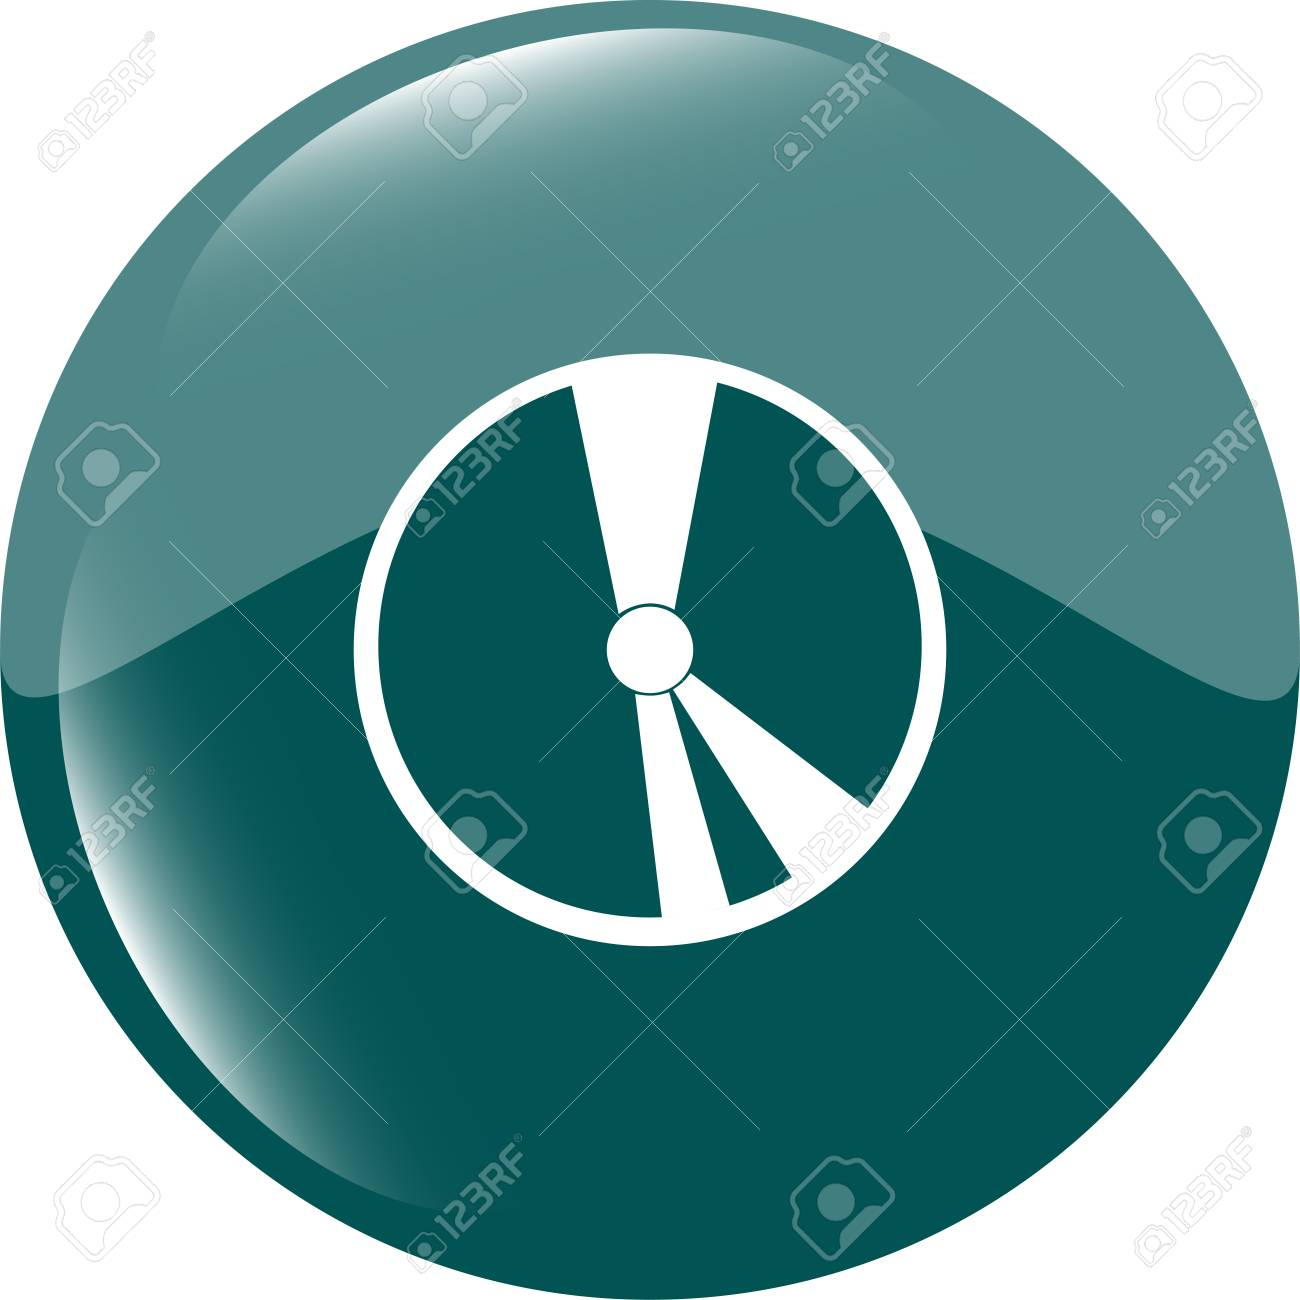 cd disk web icon button Stock Photo - 22298686